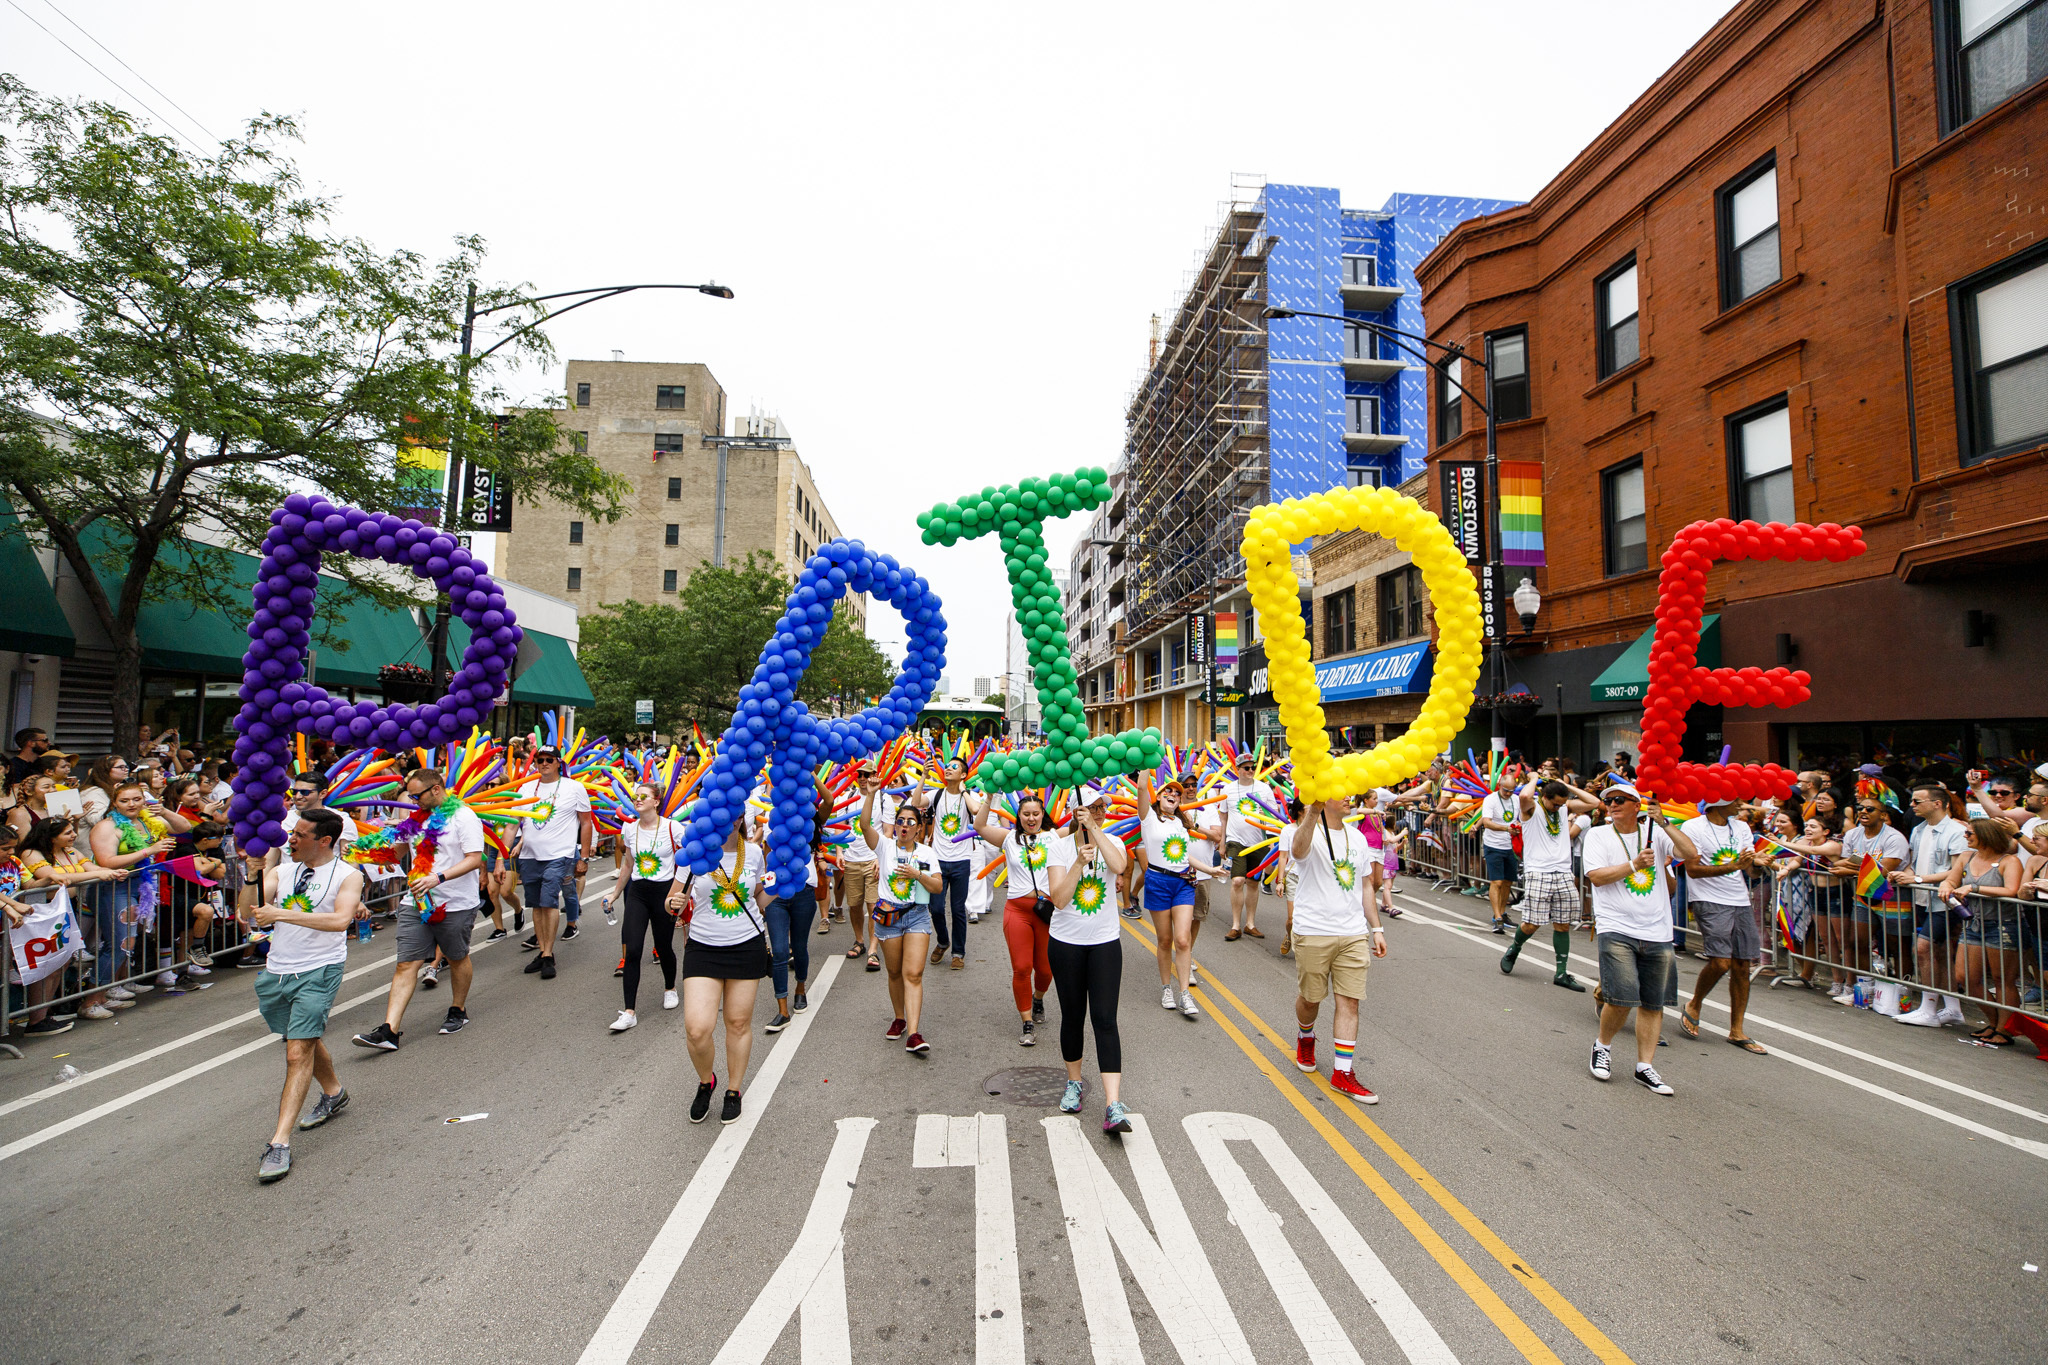 Check out colorful photos from the 2019 Chicago Pride Parade